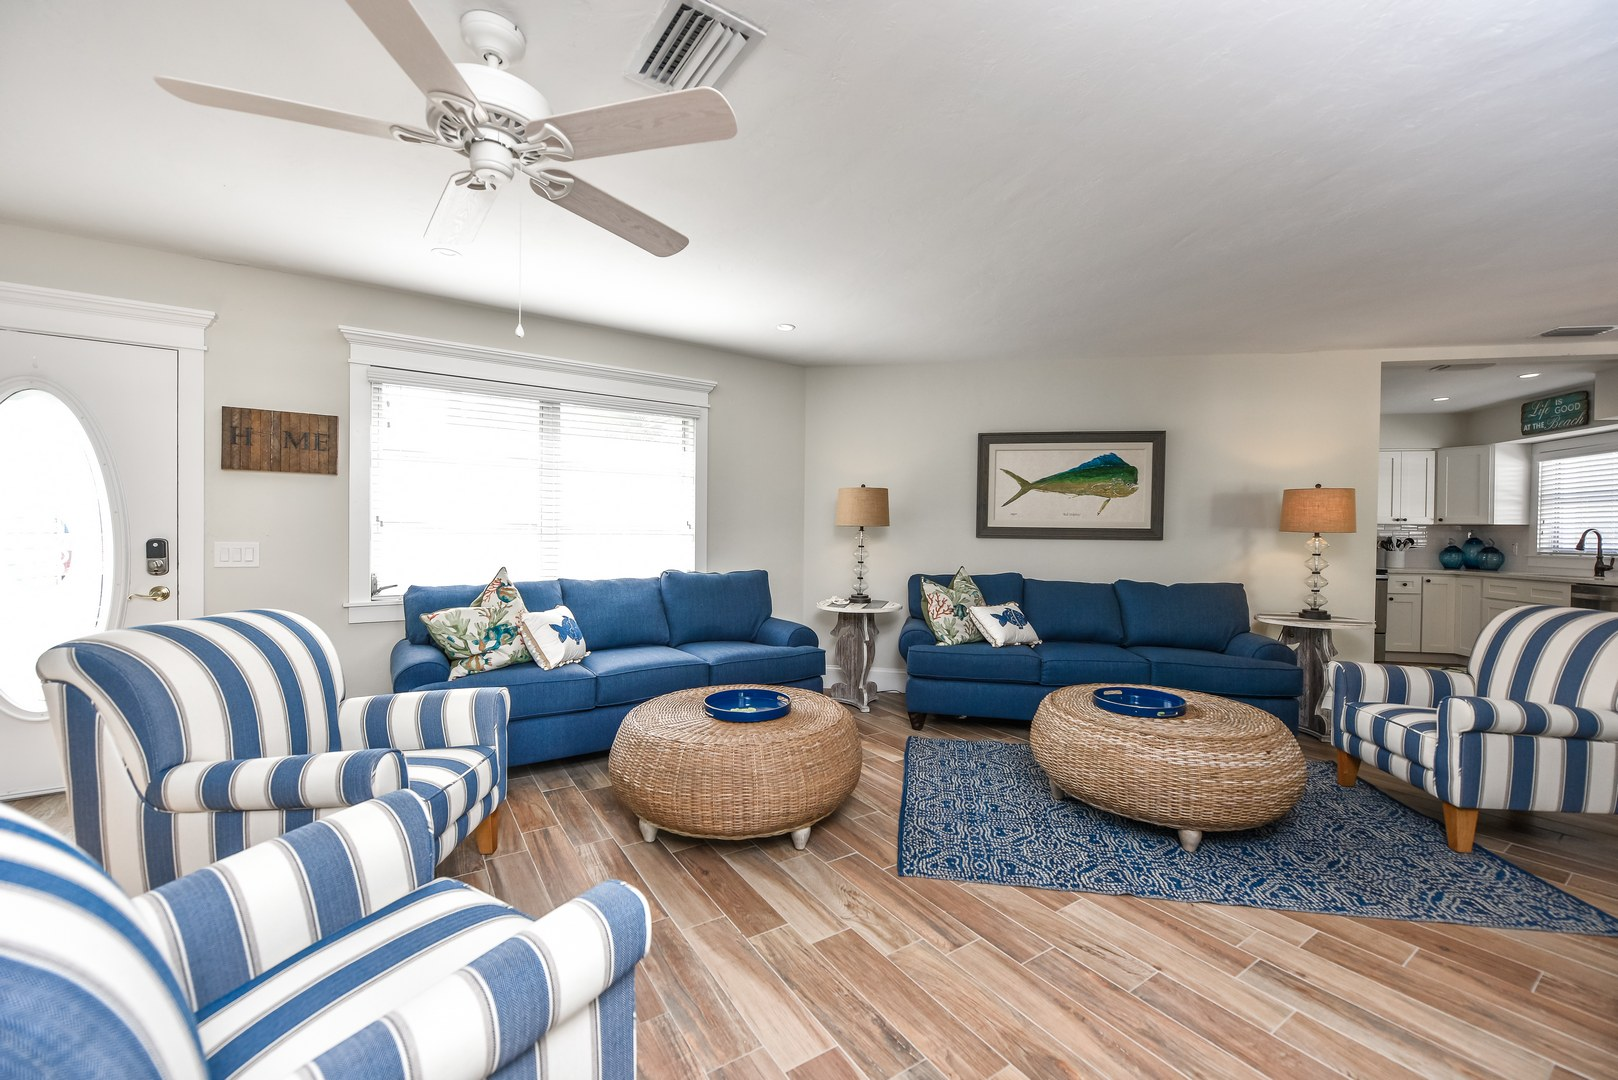 Plenty of Seating in the spacious Living Room